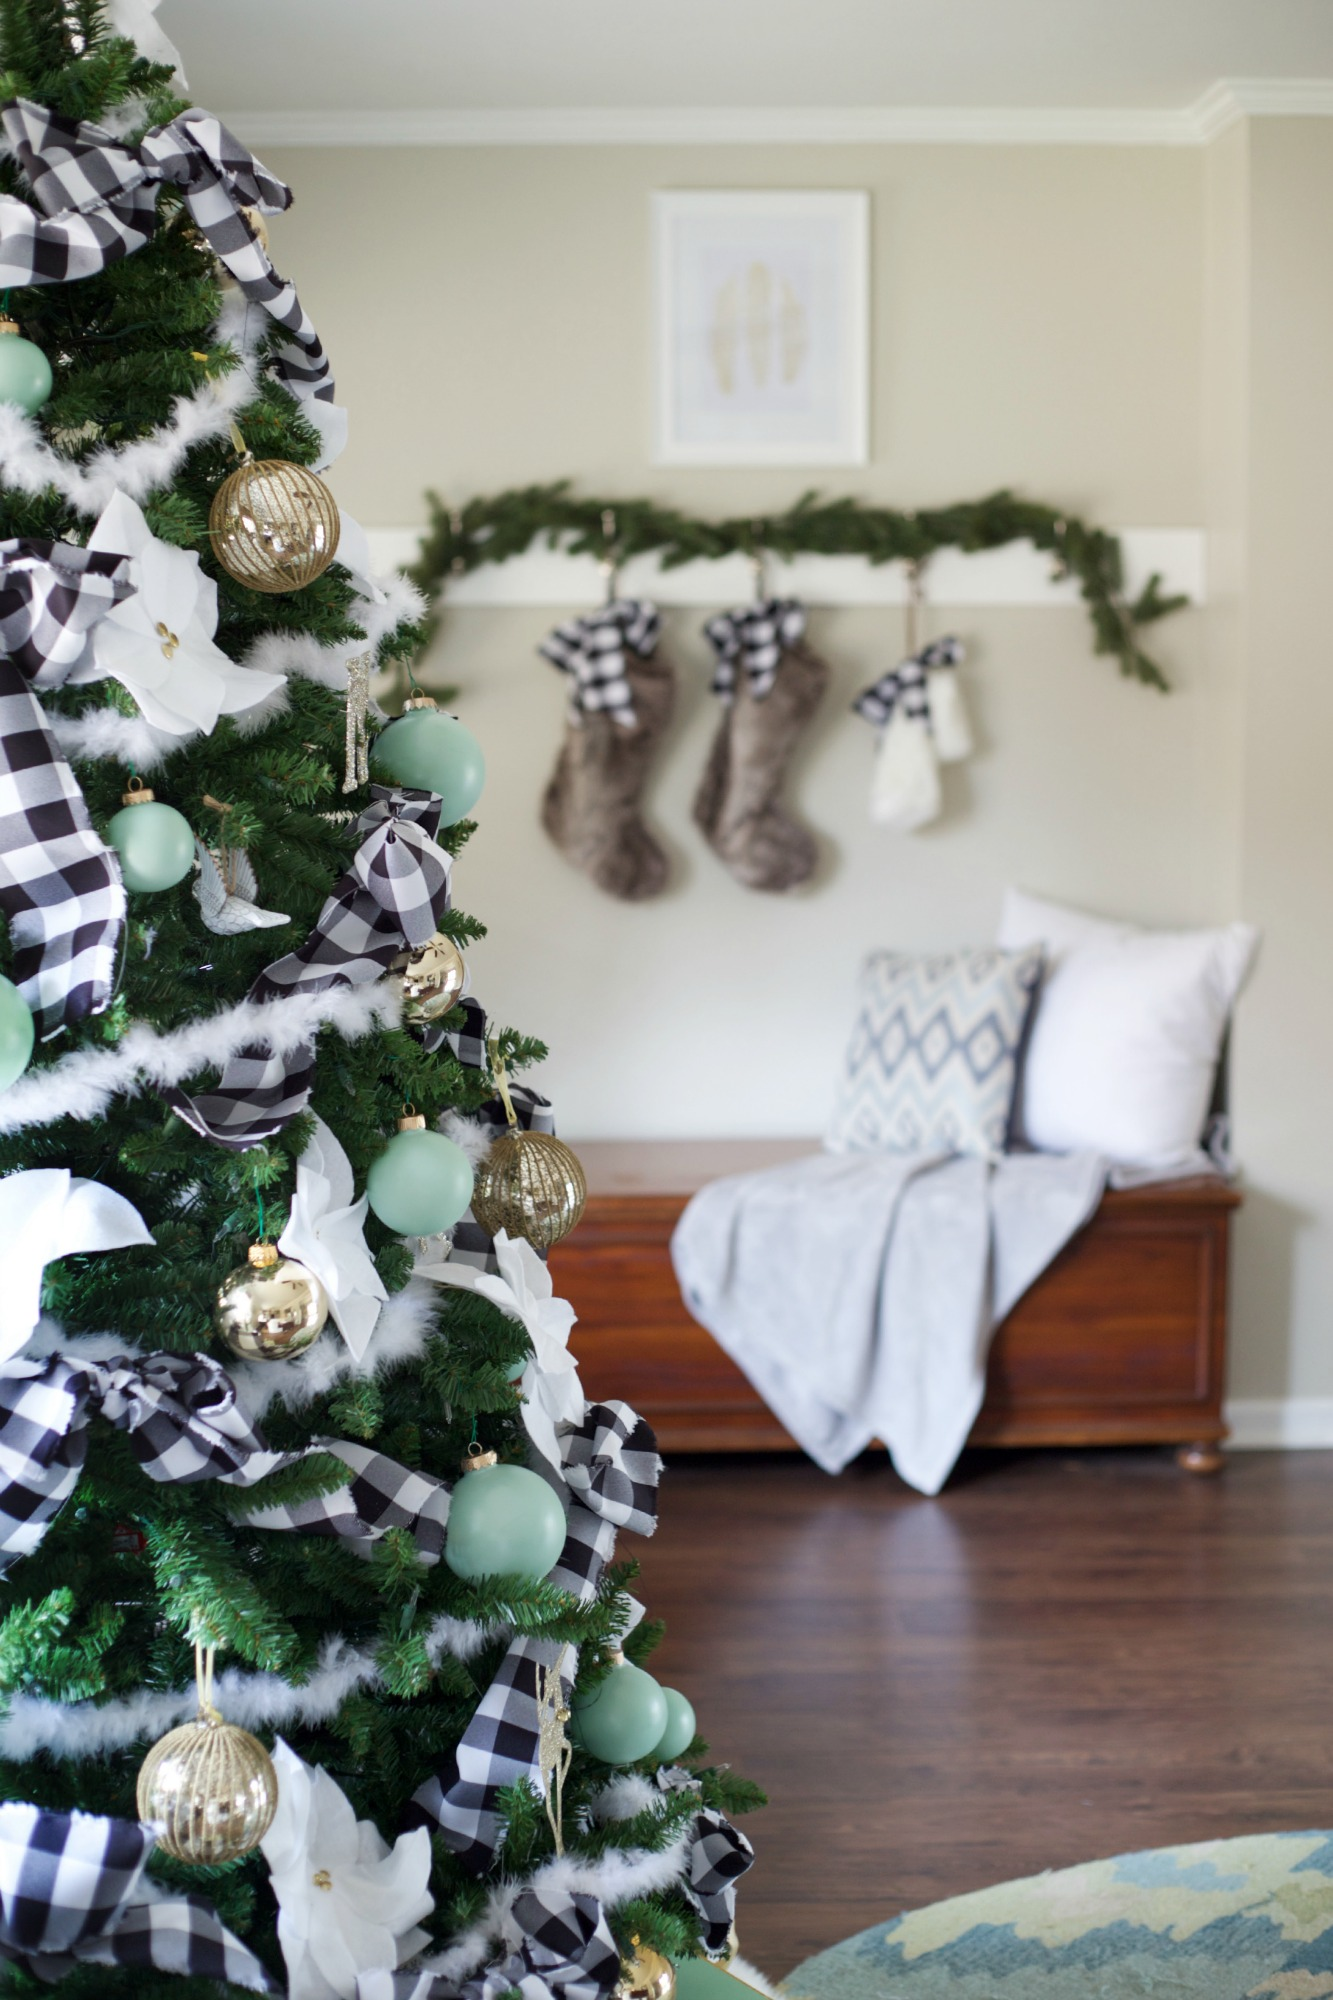 Easy Christmas Decorating Ideas | PartiesforPennies.com | Budget Friendly | Stockings on Coat Hooks